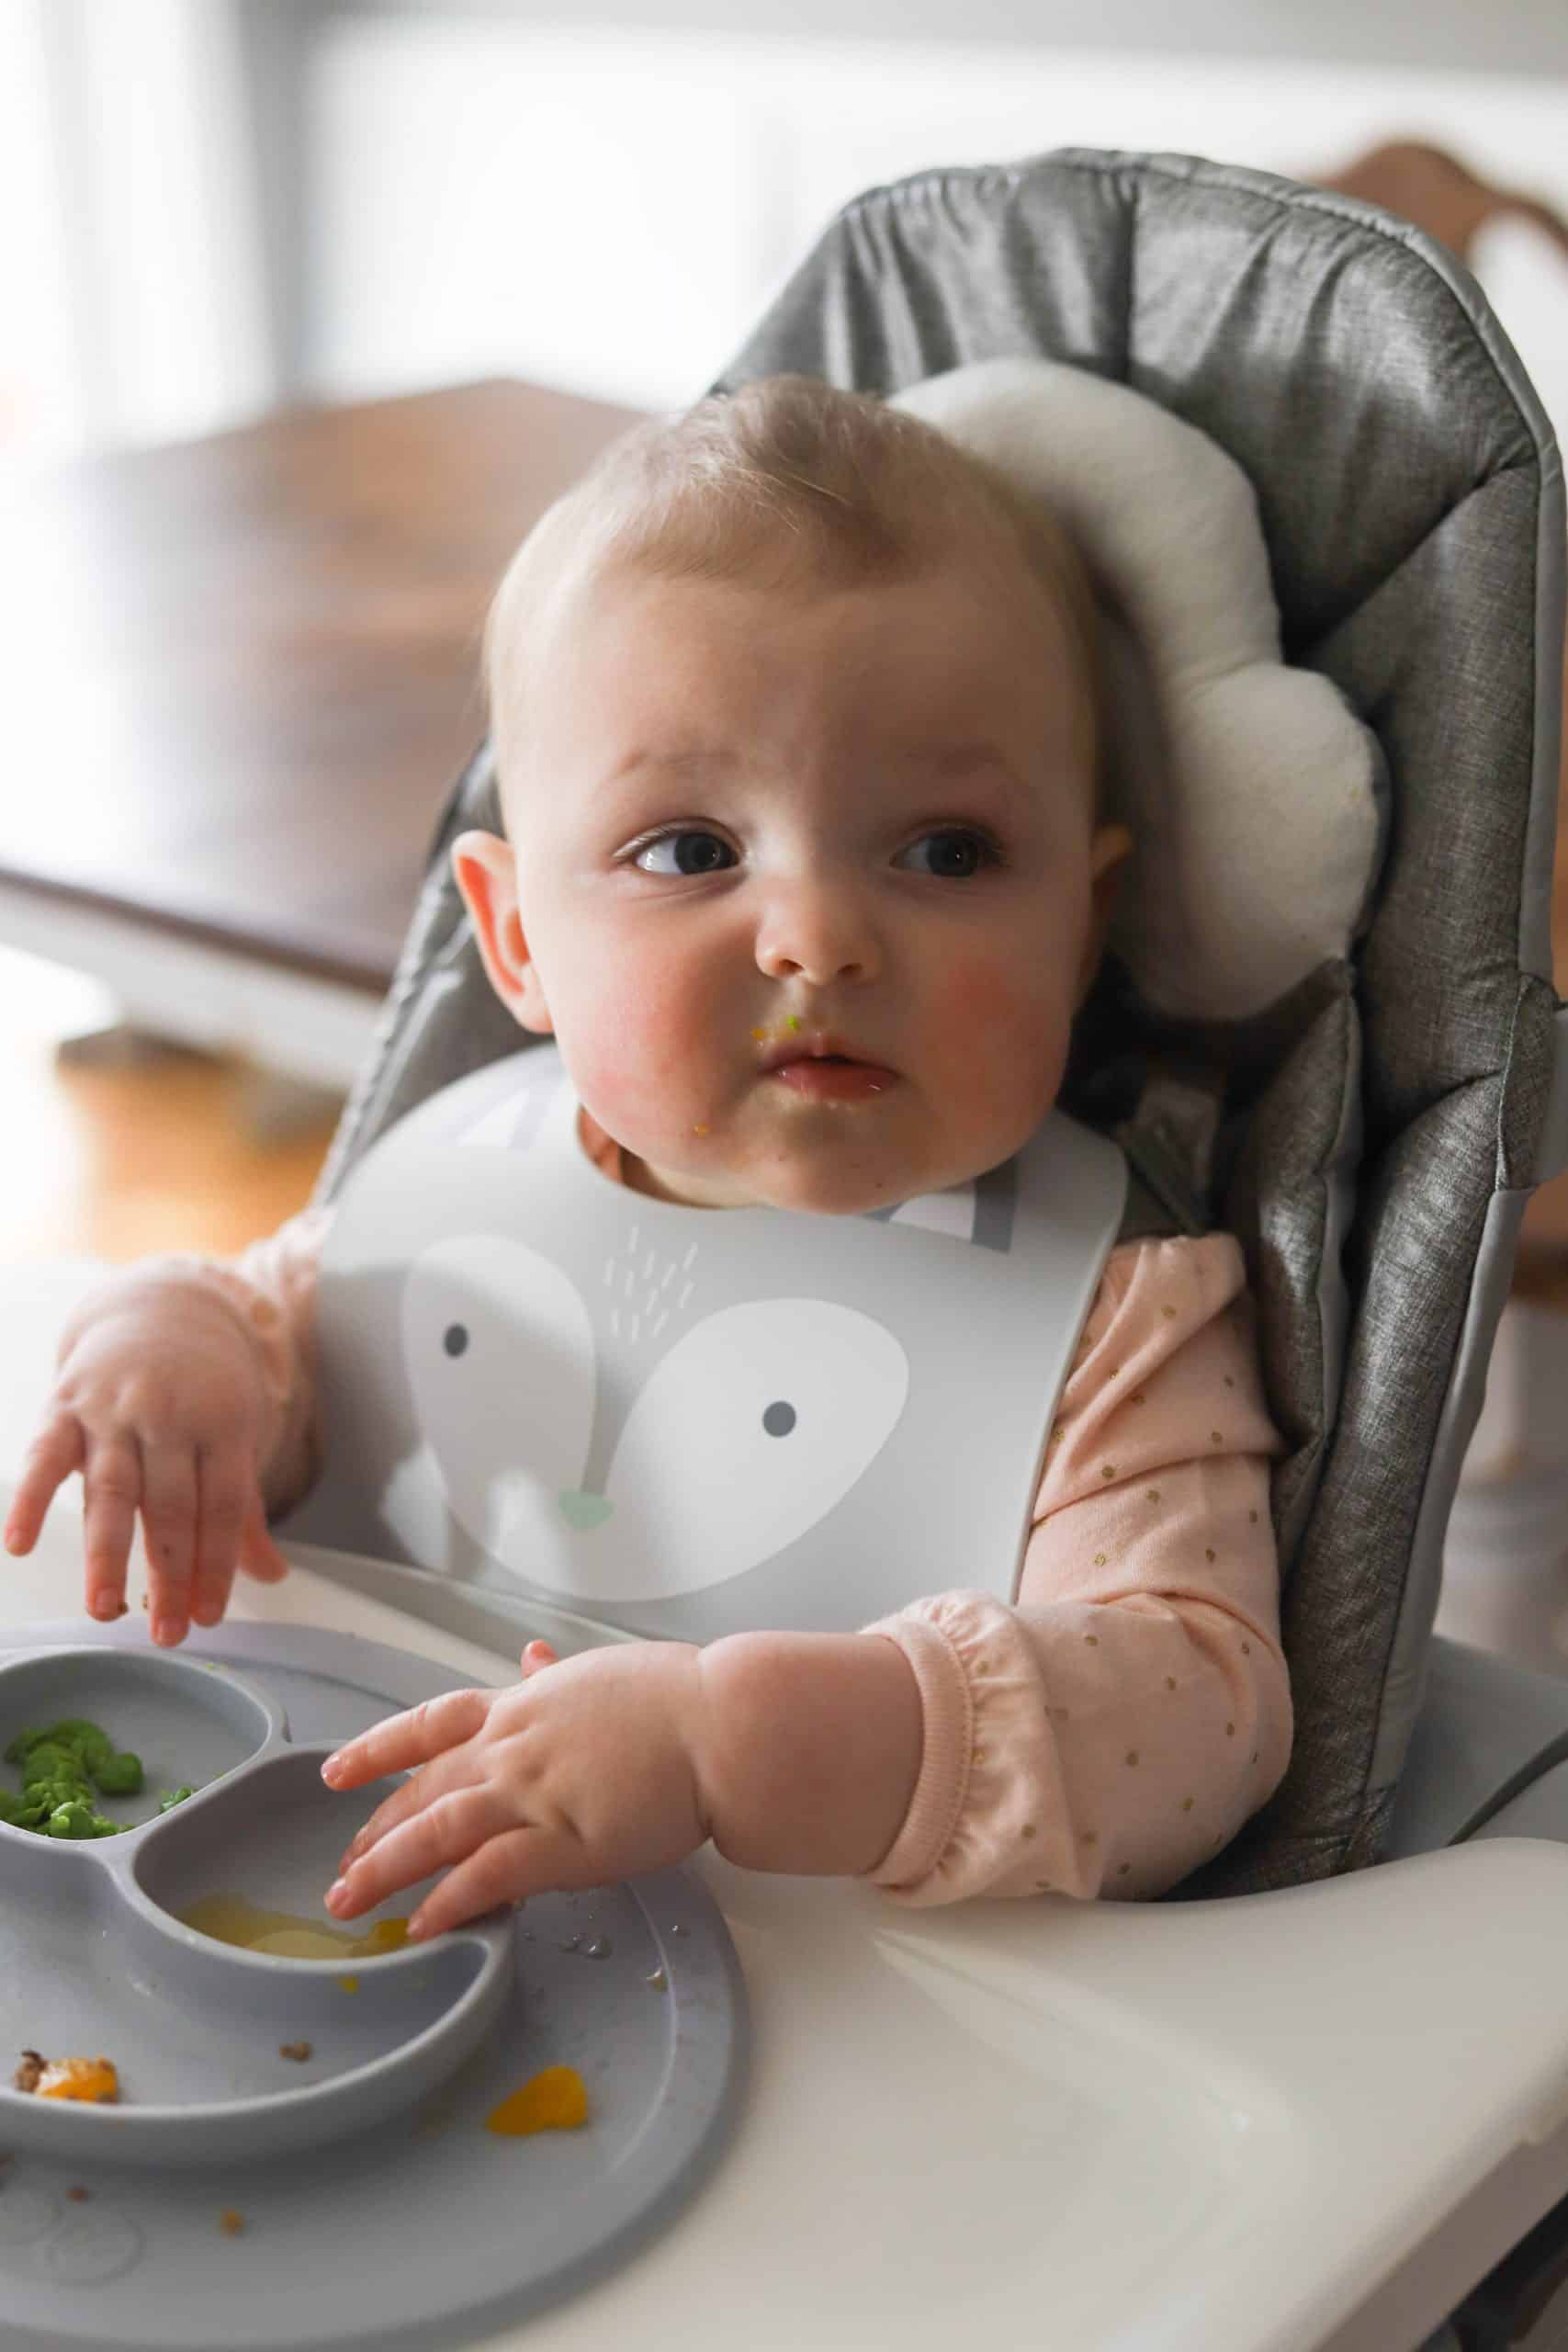 A baby with a bib in a high chair eating solids.